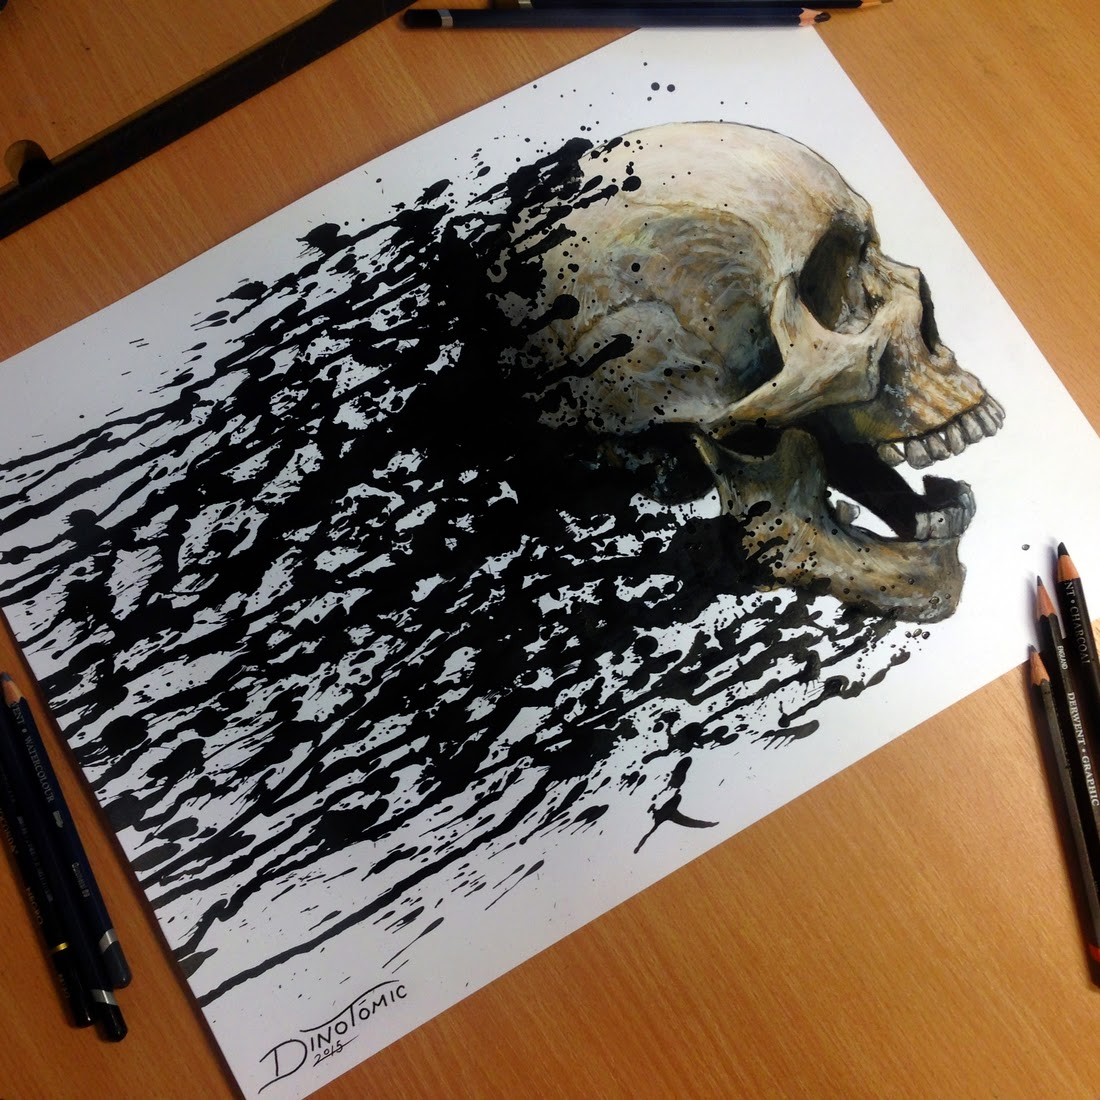 11-Skull-Splatter-Dino-Tomic-AtomiccircuS-Mastering-Art-in-Eclectic-Drawings-www-designstack-co